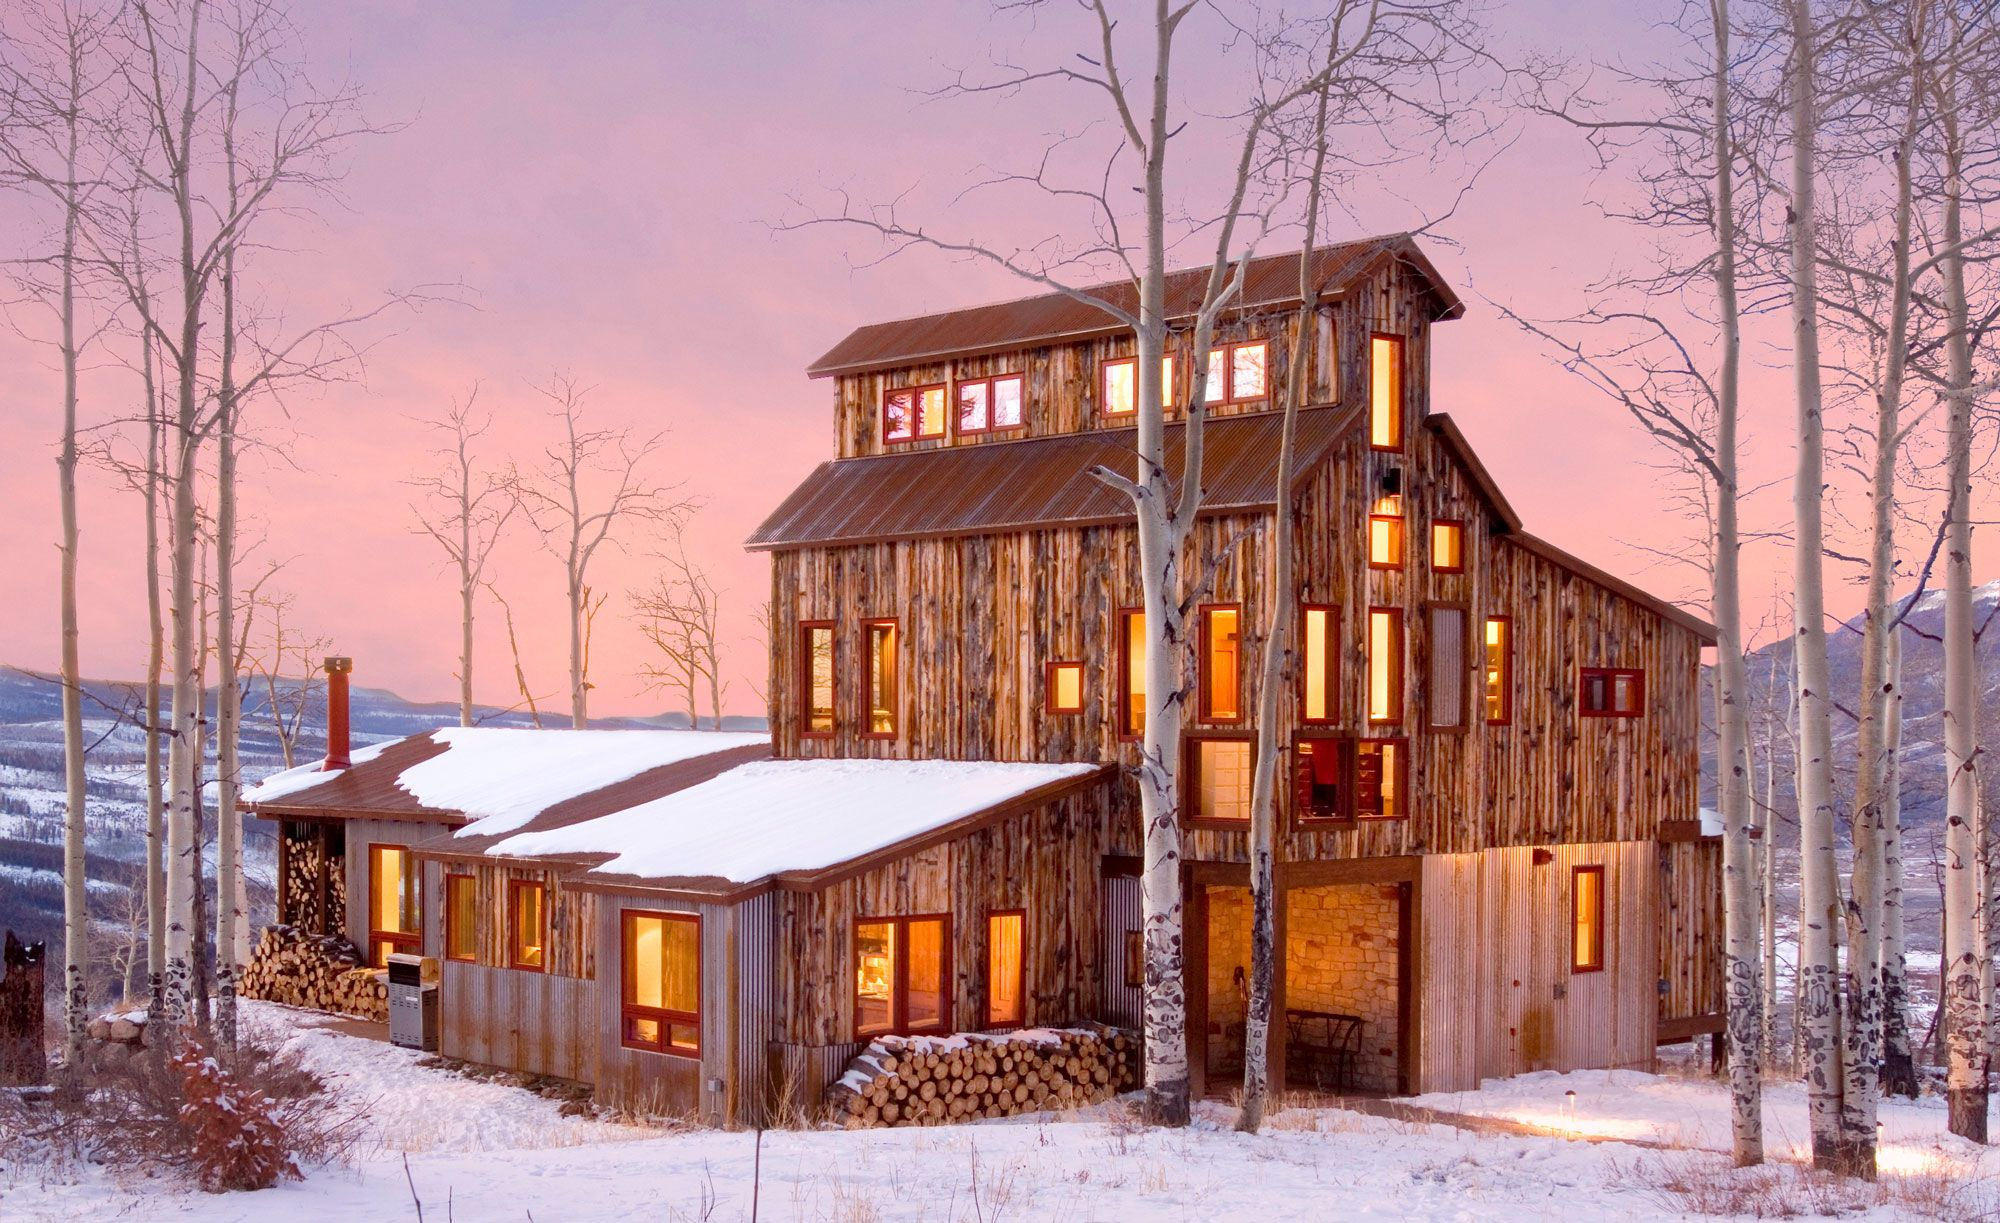 Centennial Woods Is The Largest Provider Of Sustainable Reclaimed Wood In The World Repurposing Old Snow Fen Mountain Home Exterior Converted Barn Homes House